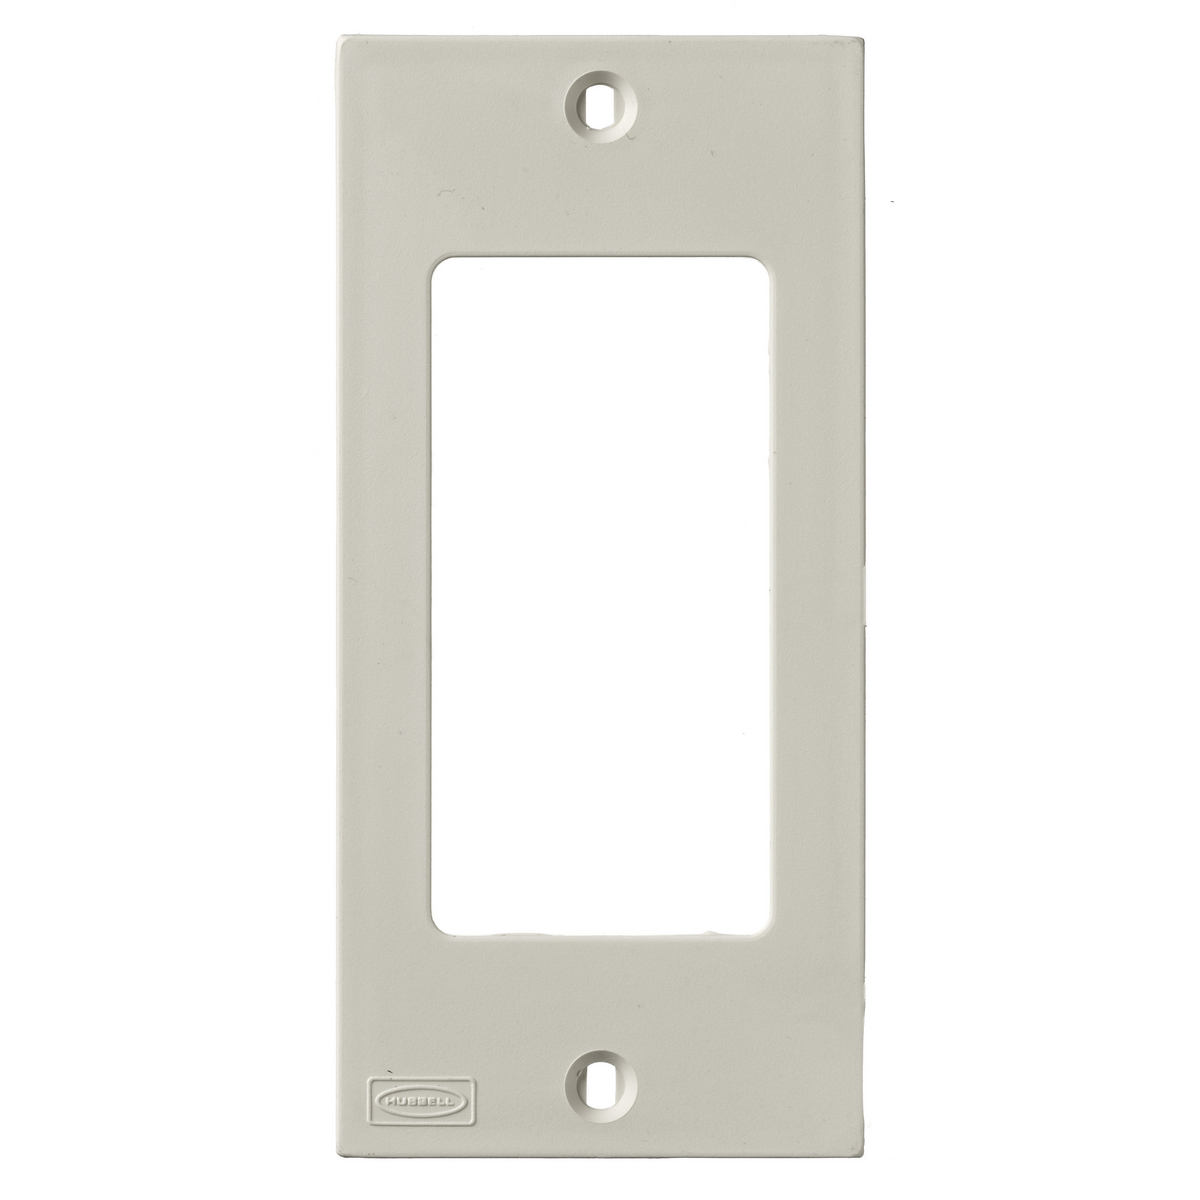 Hubbell KP26 1-Gang Office White Decorator Raceway Face Plate